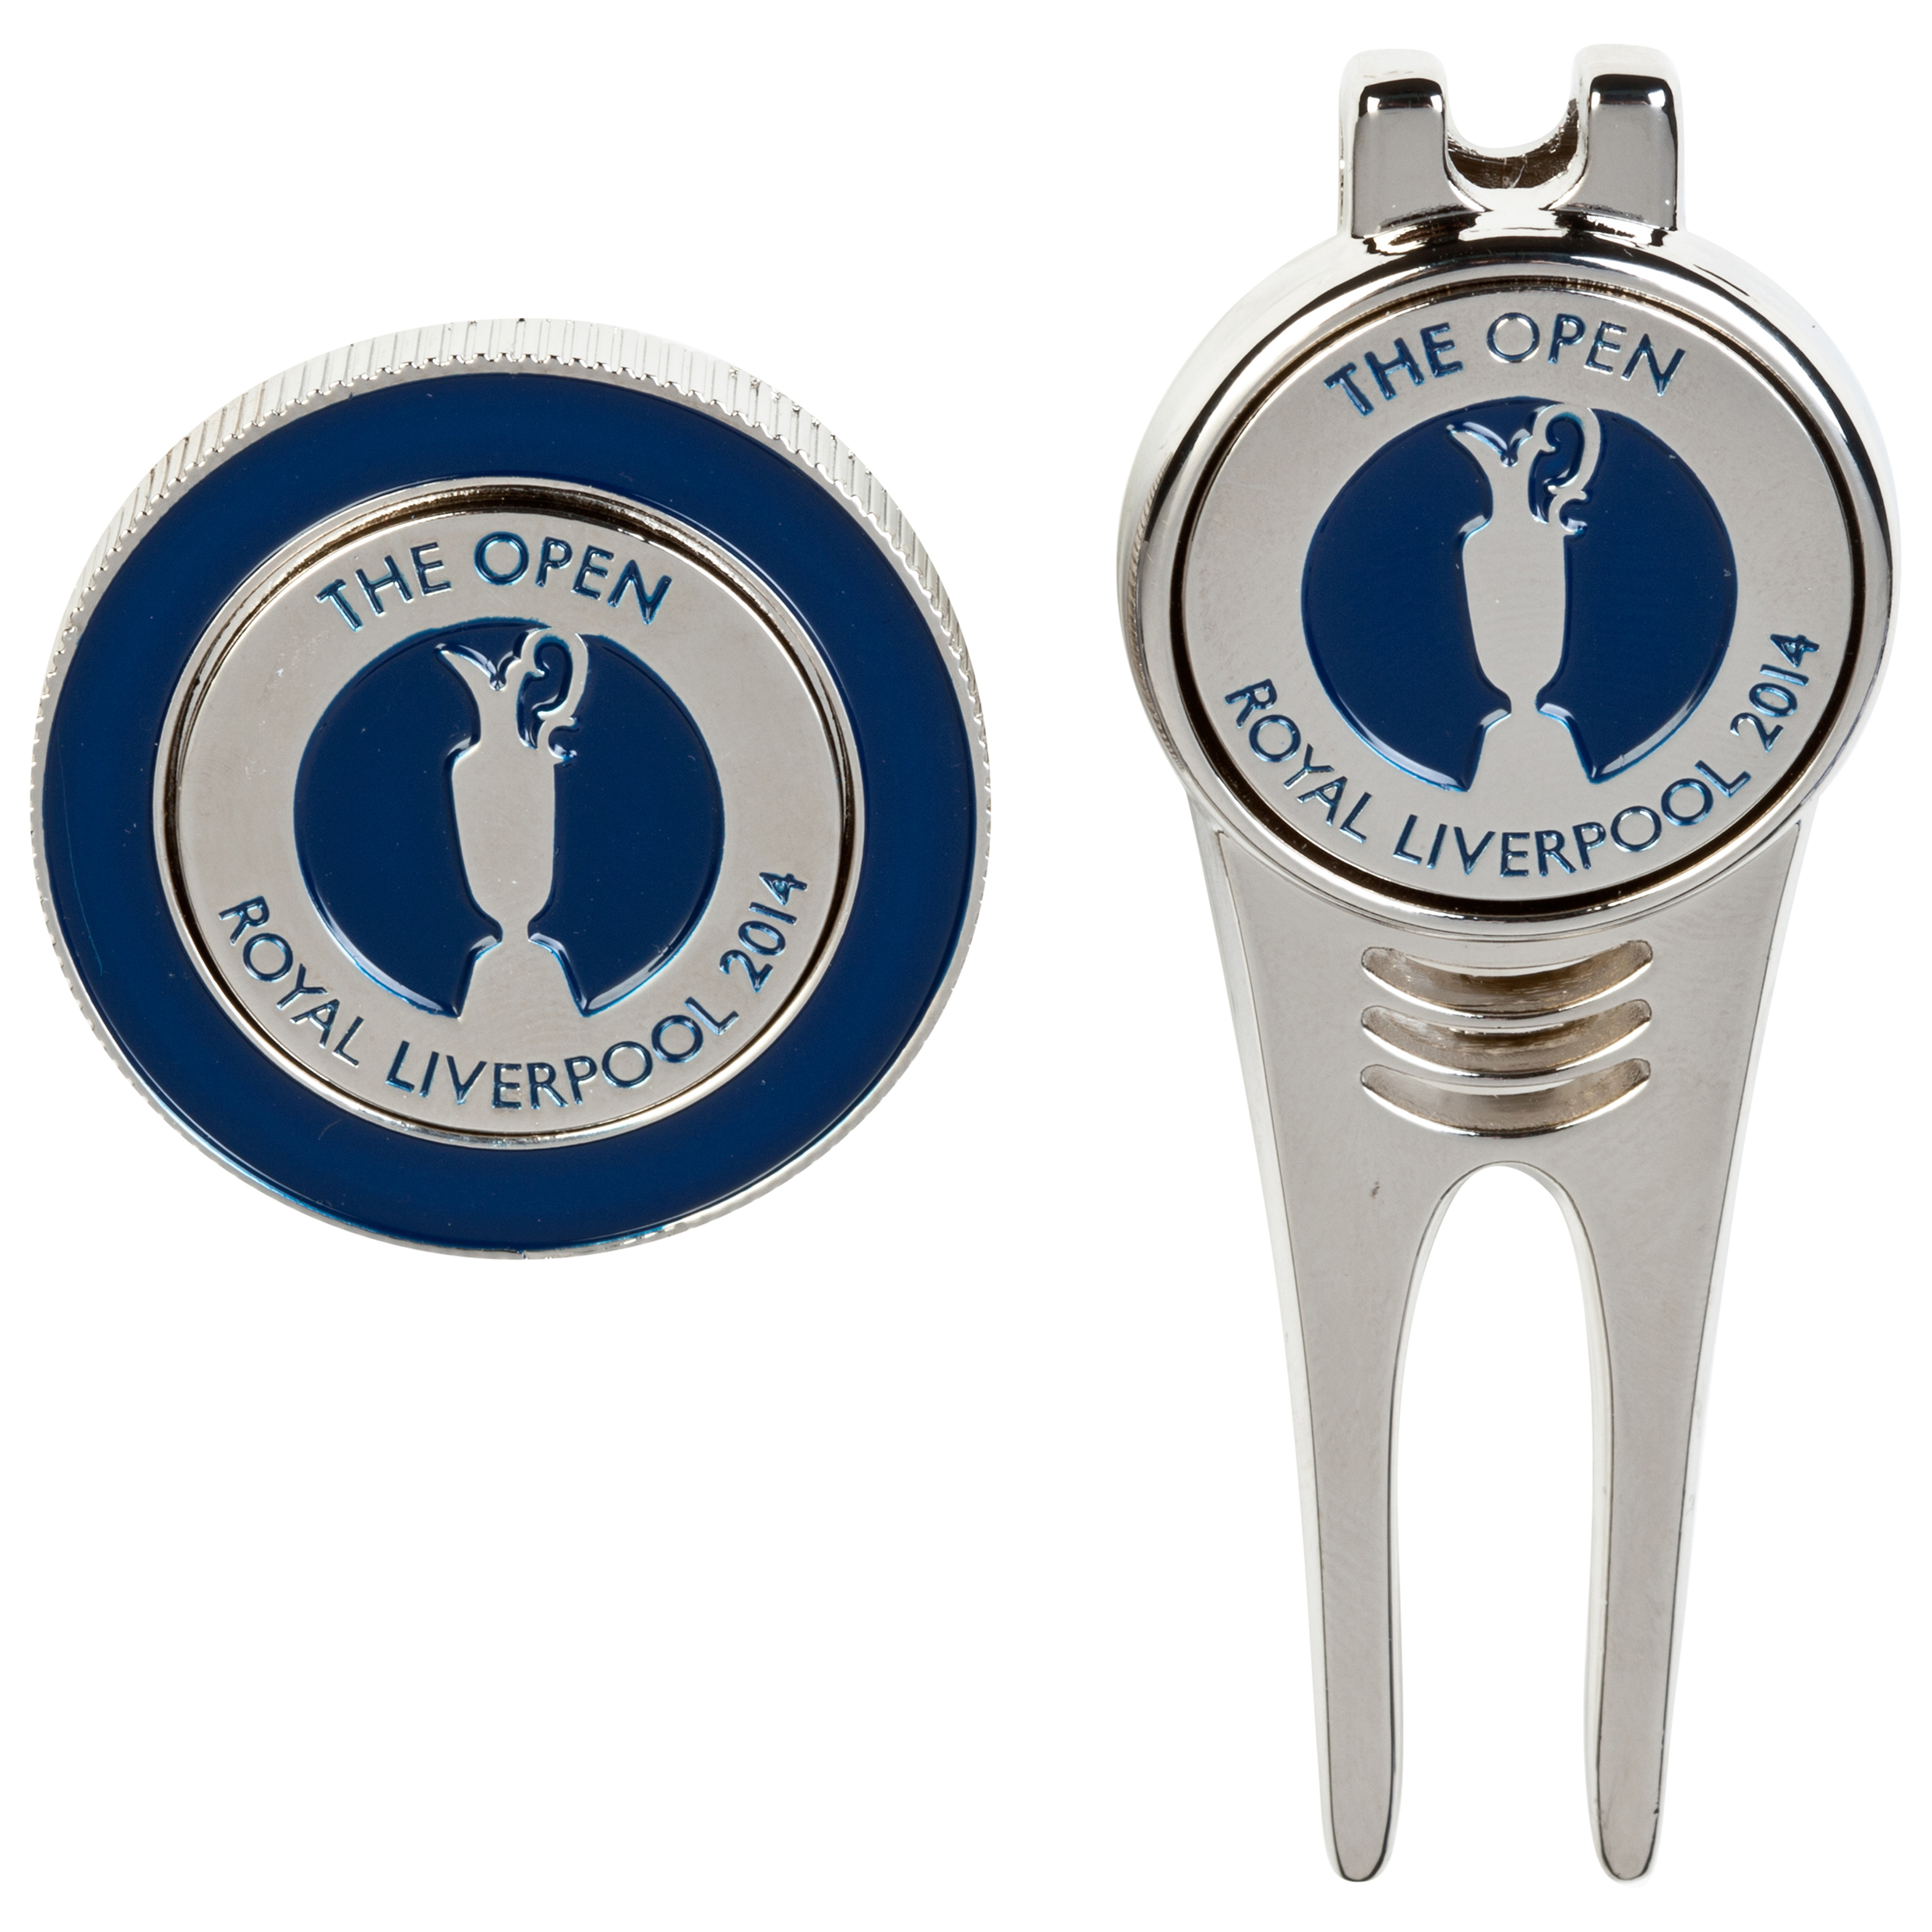 The Open Championship Royal Liverpool 2014 Magnetic Pitchfork and Magnetic Ballmarker coin